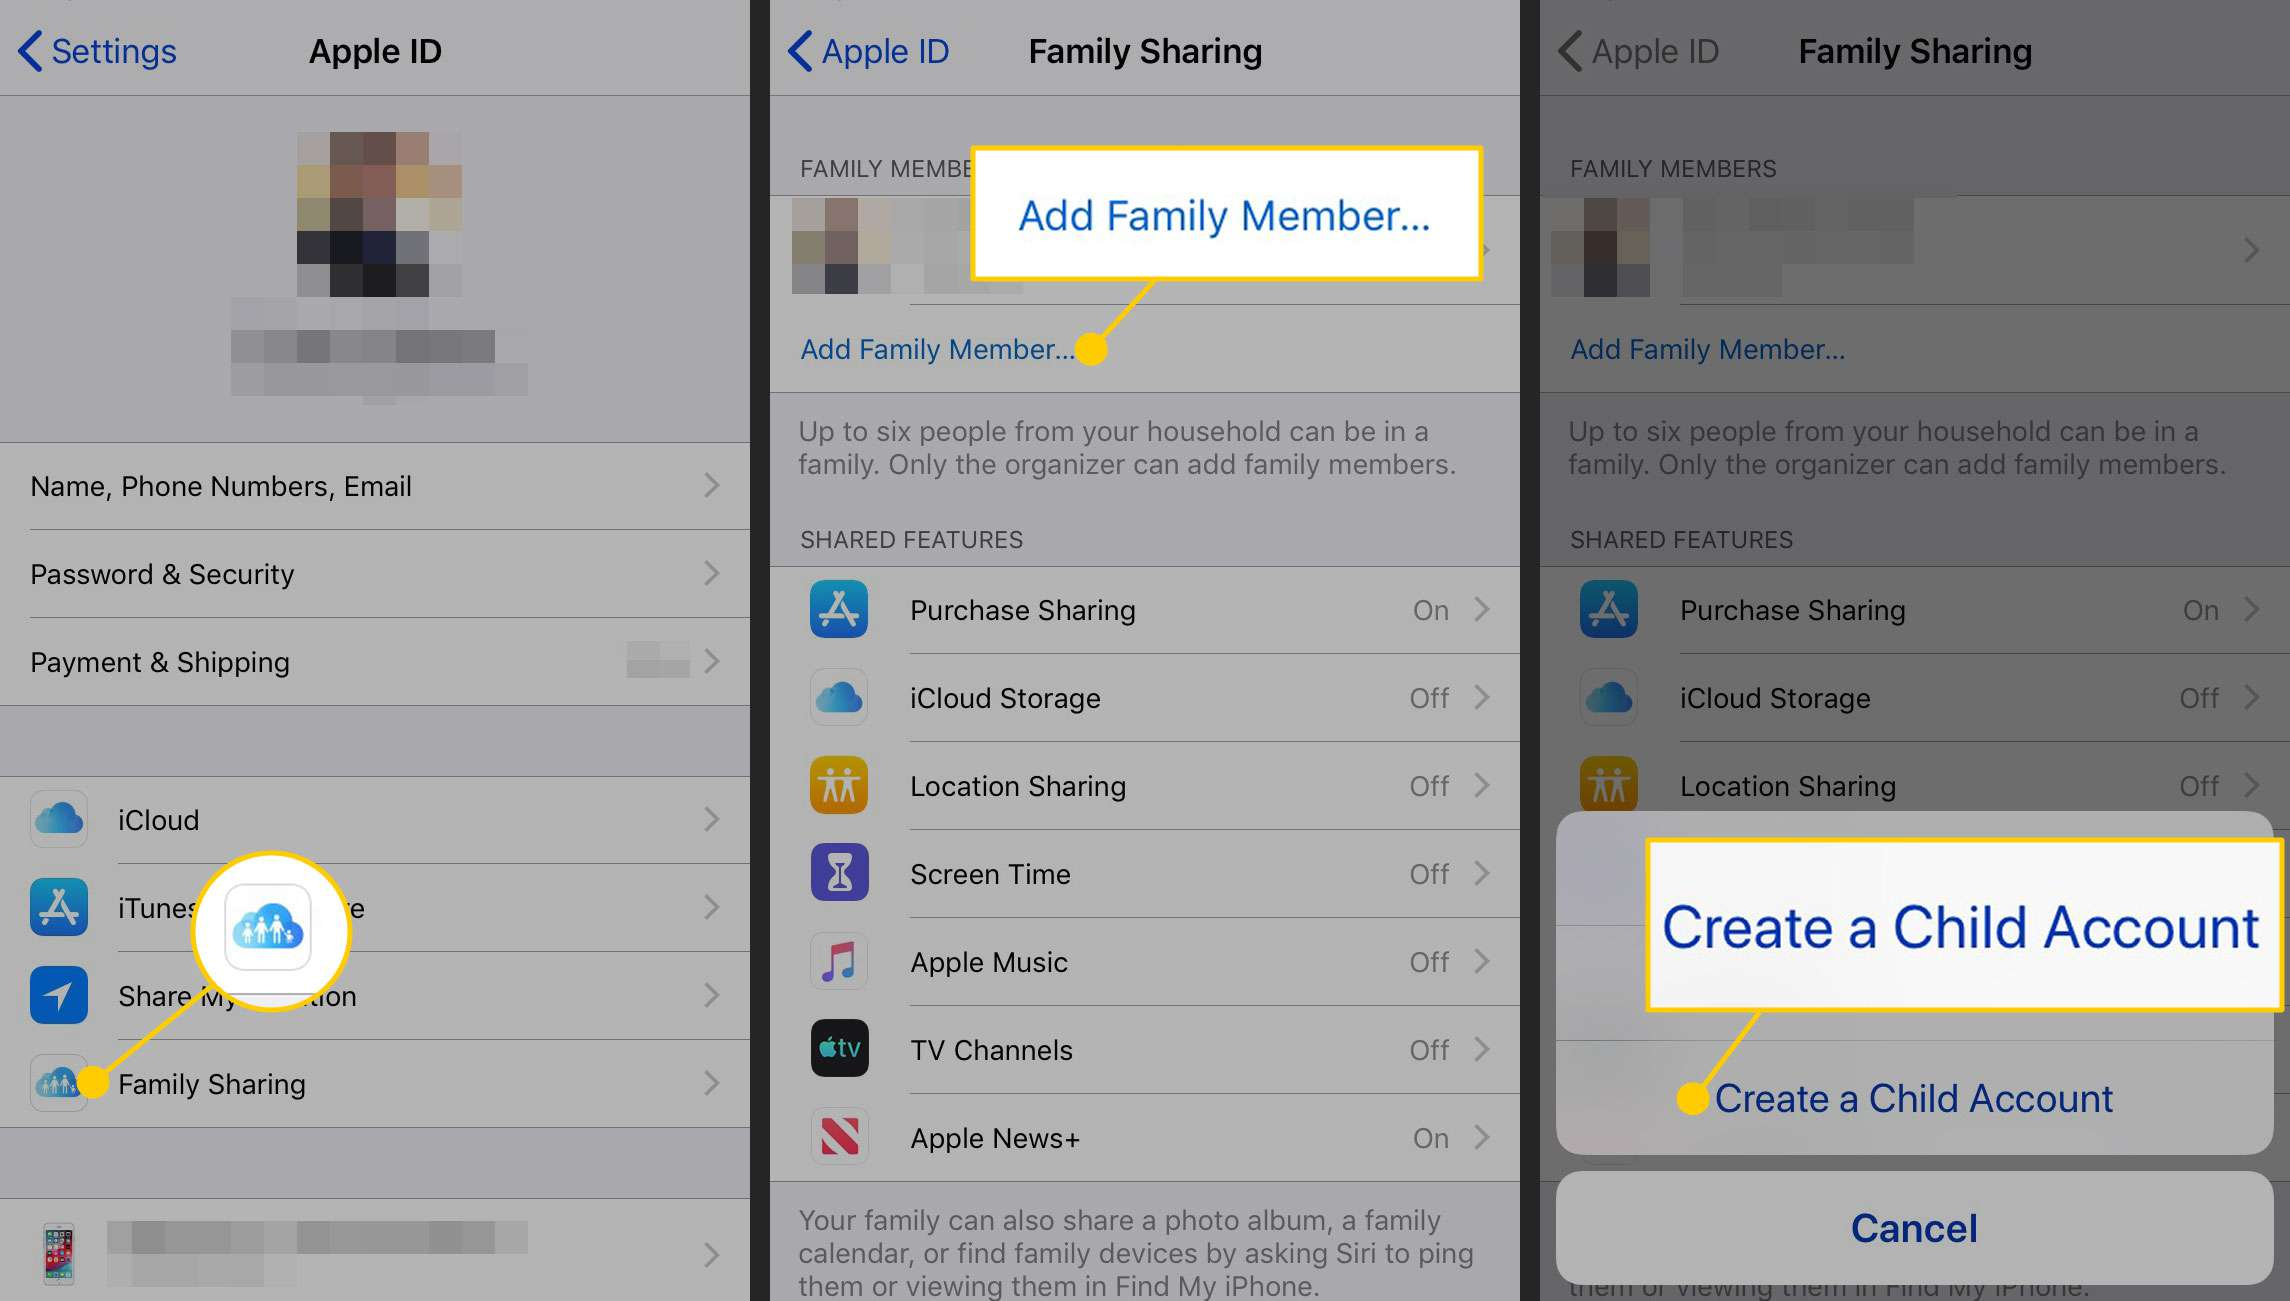 How to Create an Apple ID for a Child